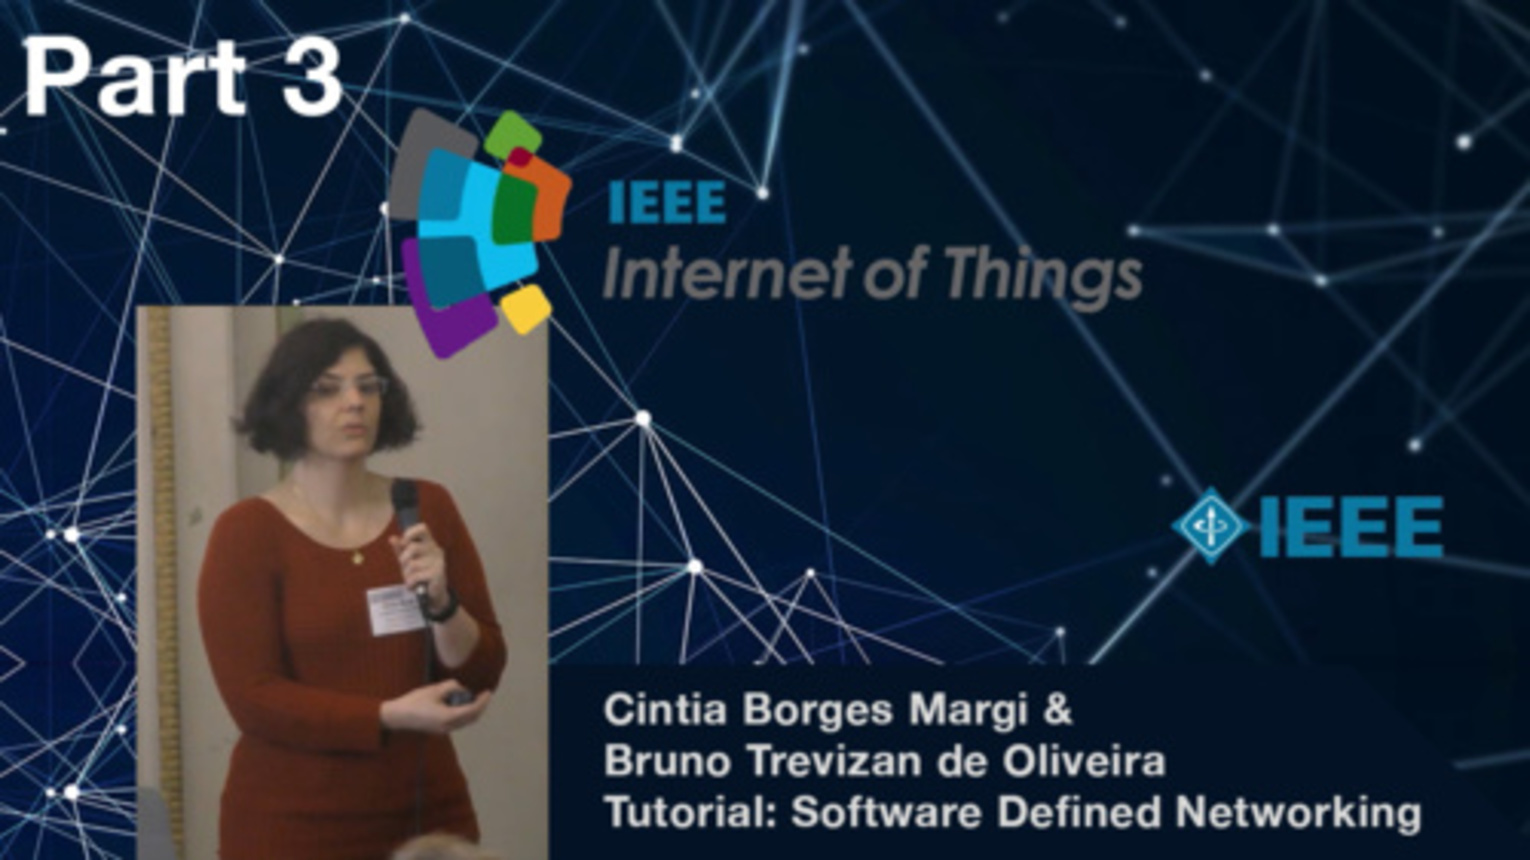 Part 3: Software-defined Networking in the Wireless Sensor Networks and the IoT Context - Bruno Trevizan de Oliveira and Cintia Borges Margi, IEEE WF-IoT 2015